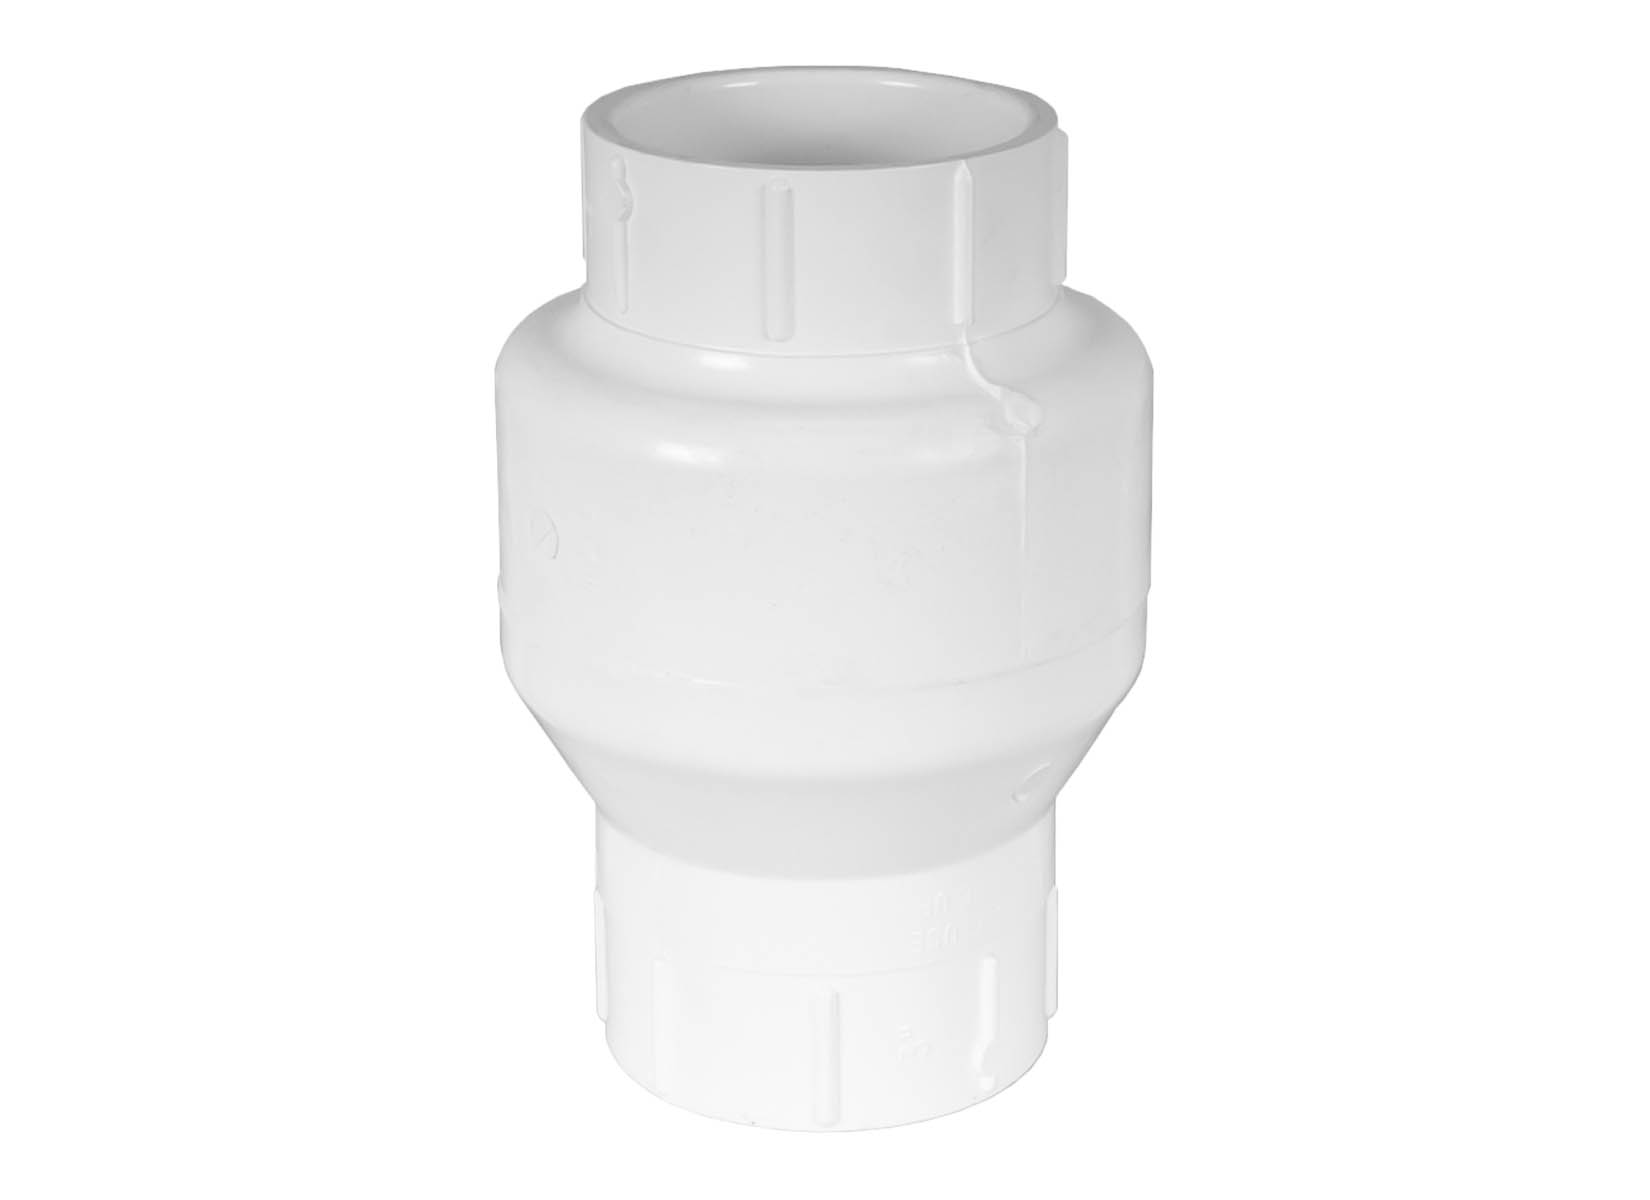 3 inch Check Valve upright view